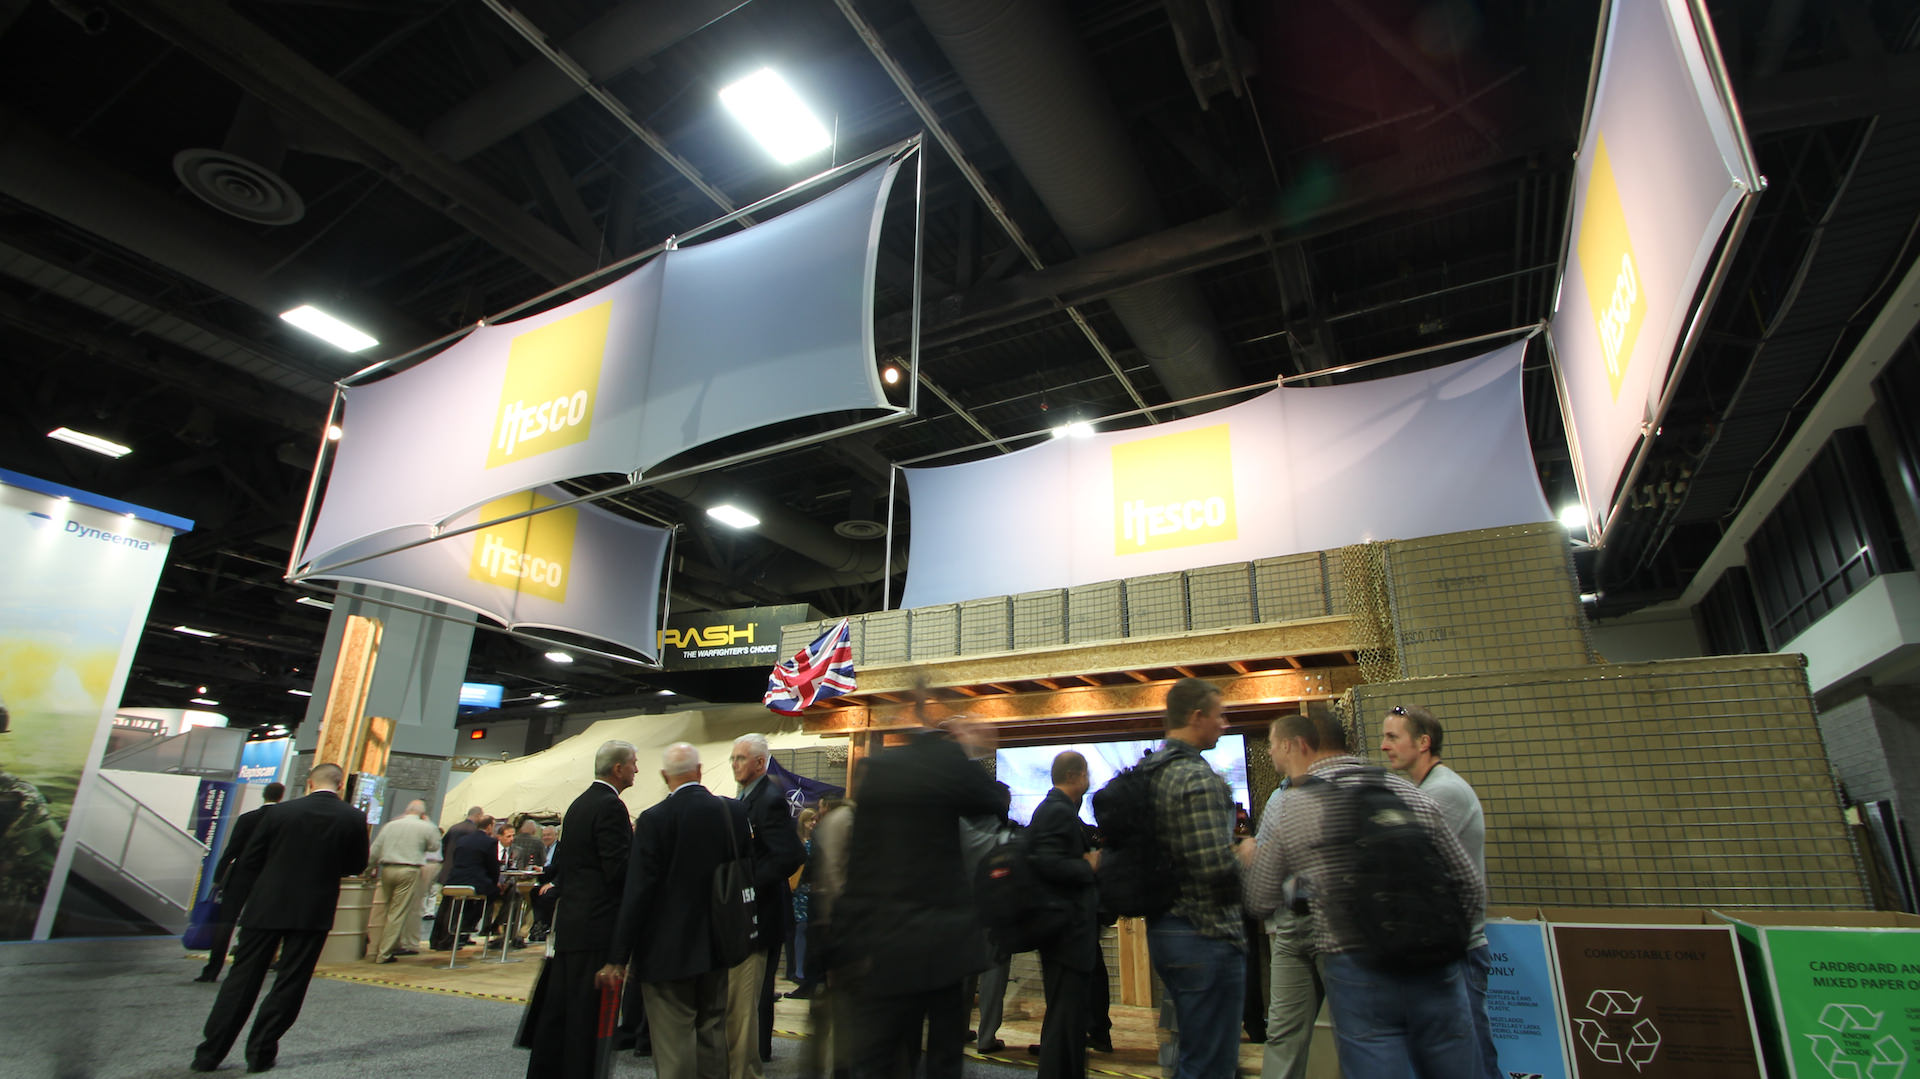 Themed_exhibition_stand_5.jpg